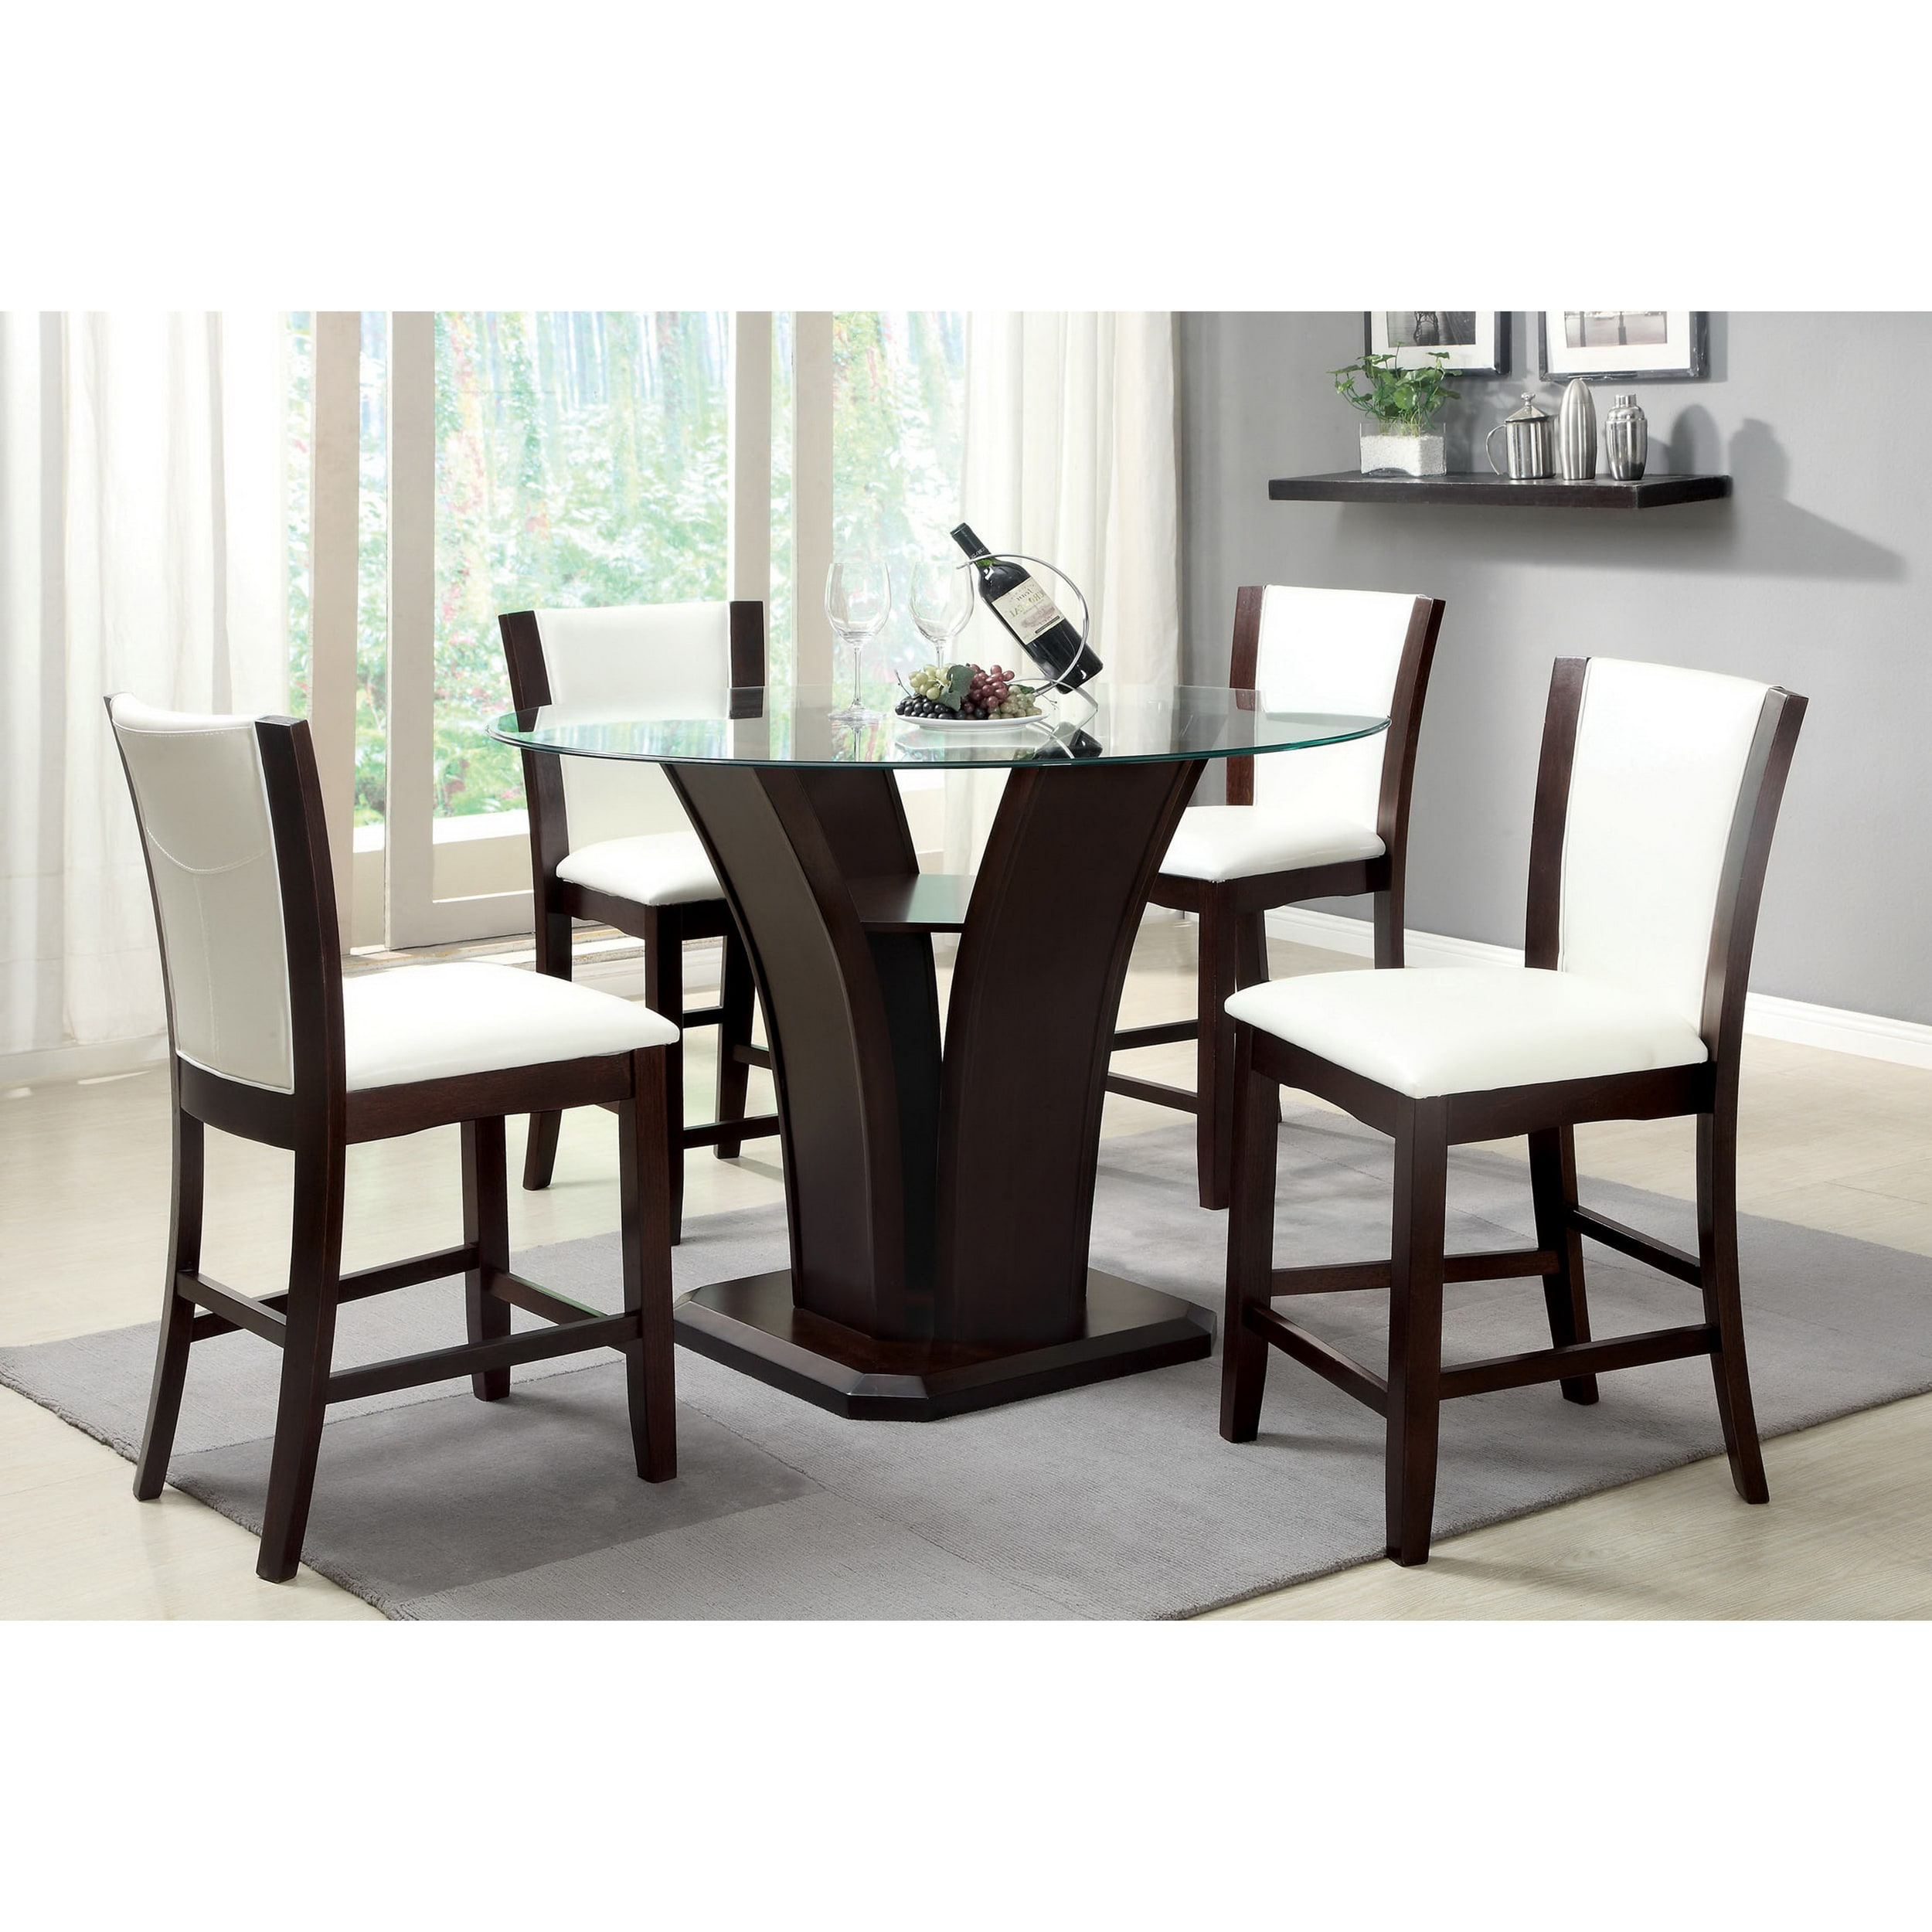 Buy Glass Kitchen U0026 Dining Room Sets Online At Overstock.com | Our Best  Dining Room U0026 Bar Furniture Deals